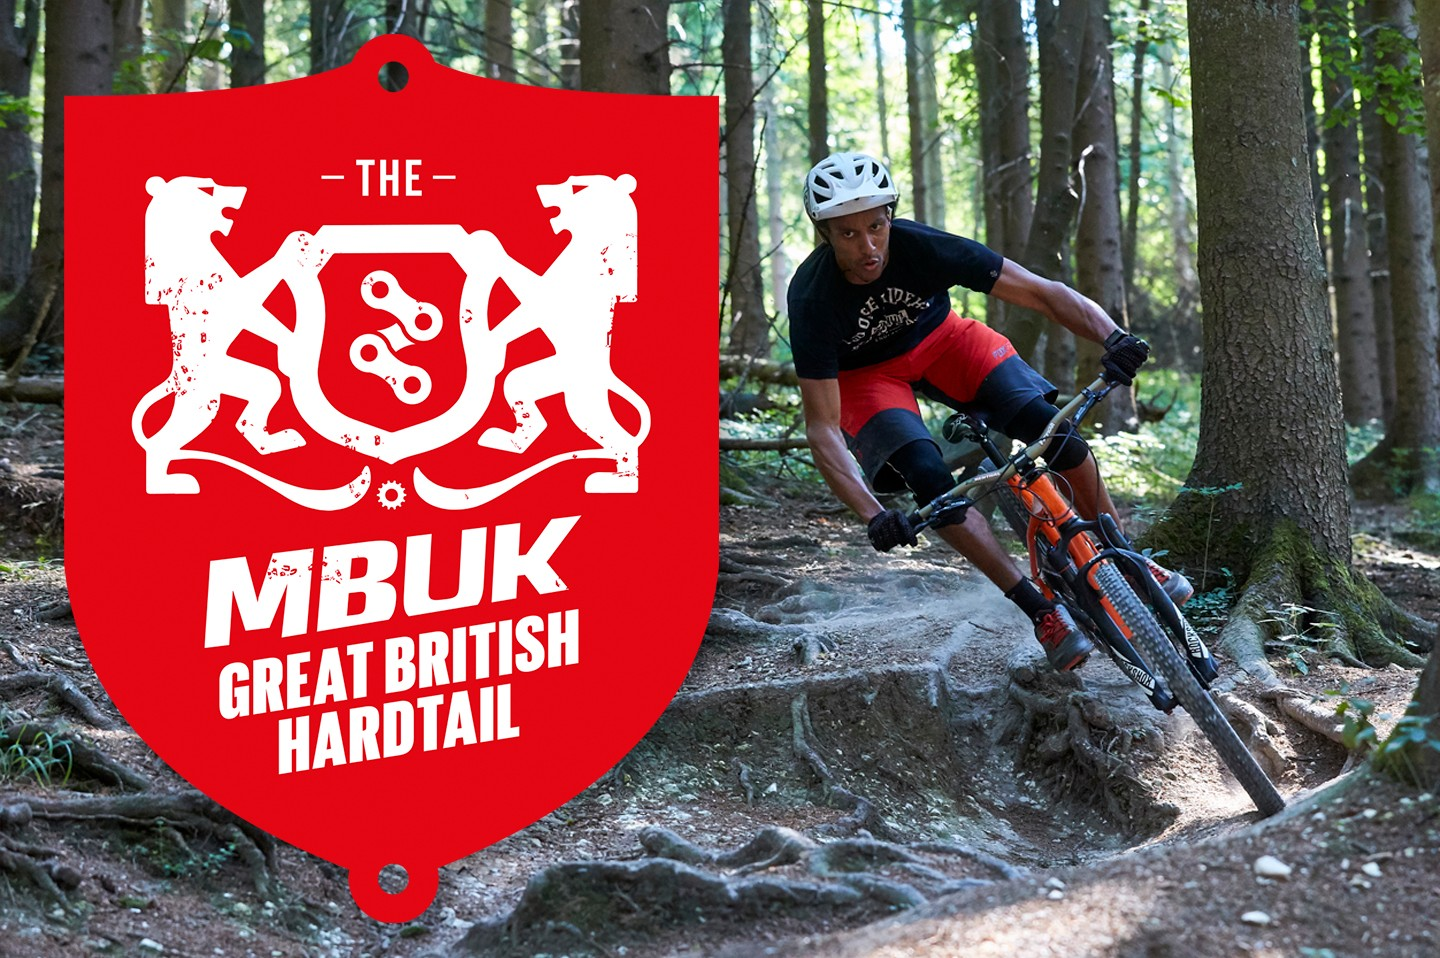 The MBUK Great British hardtail